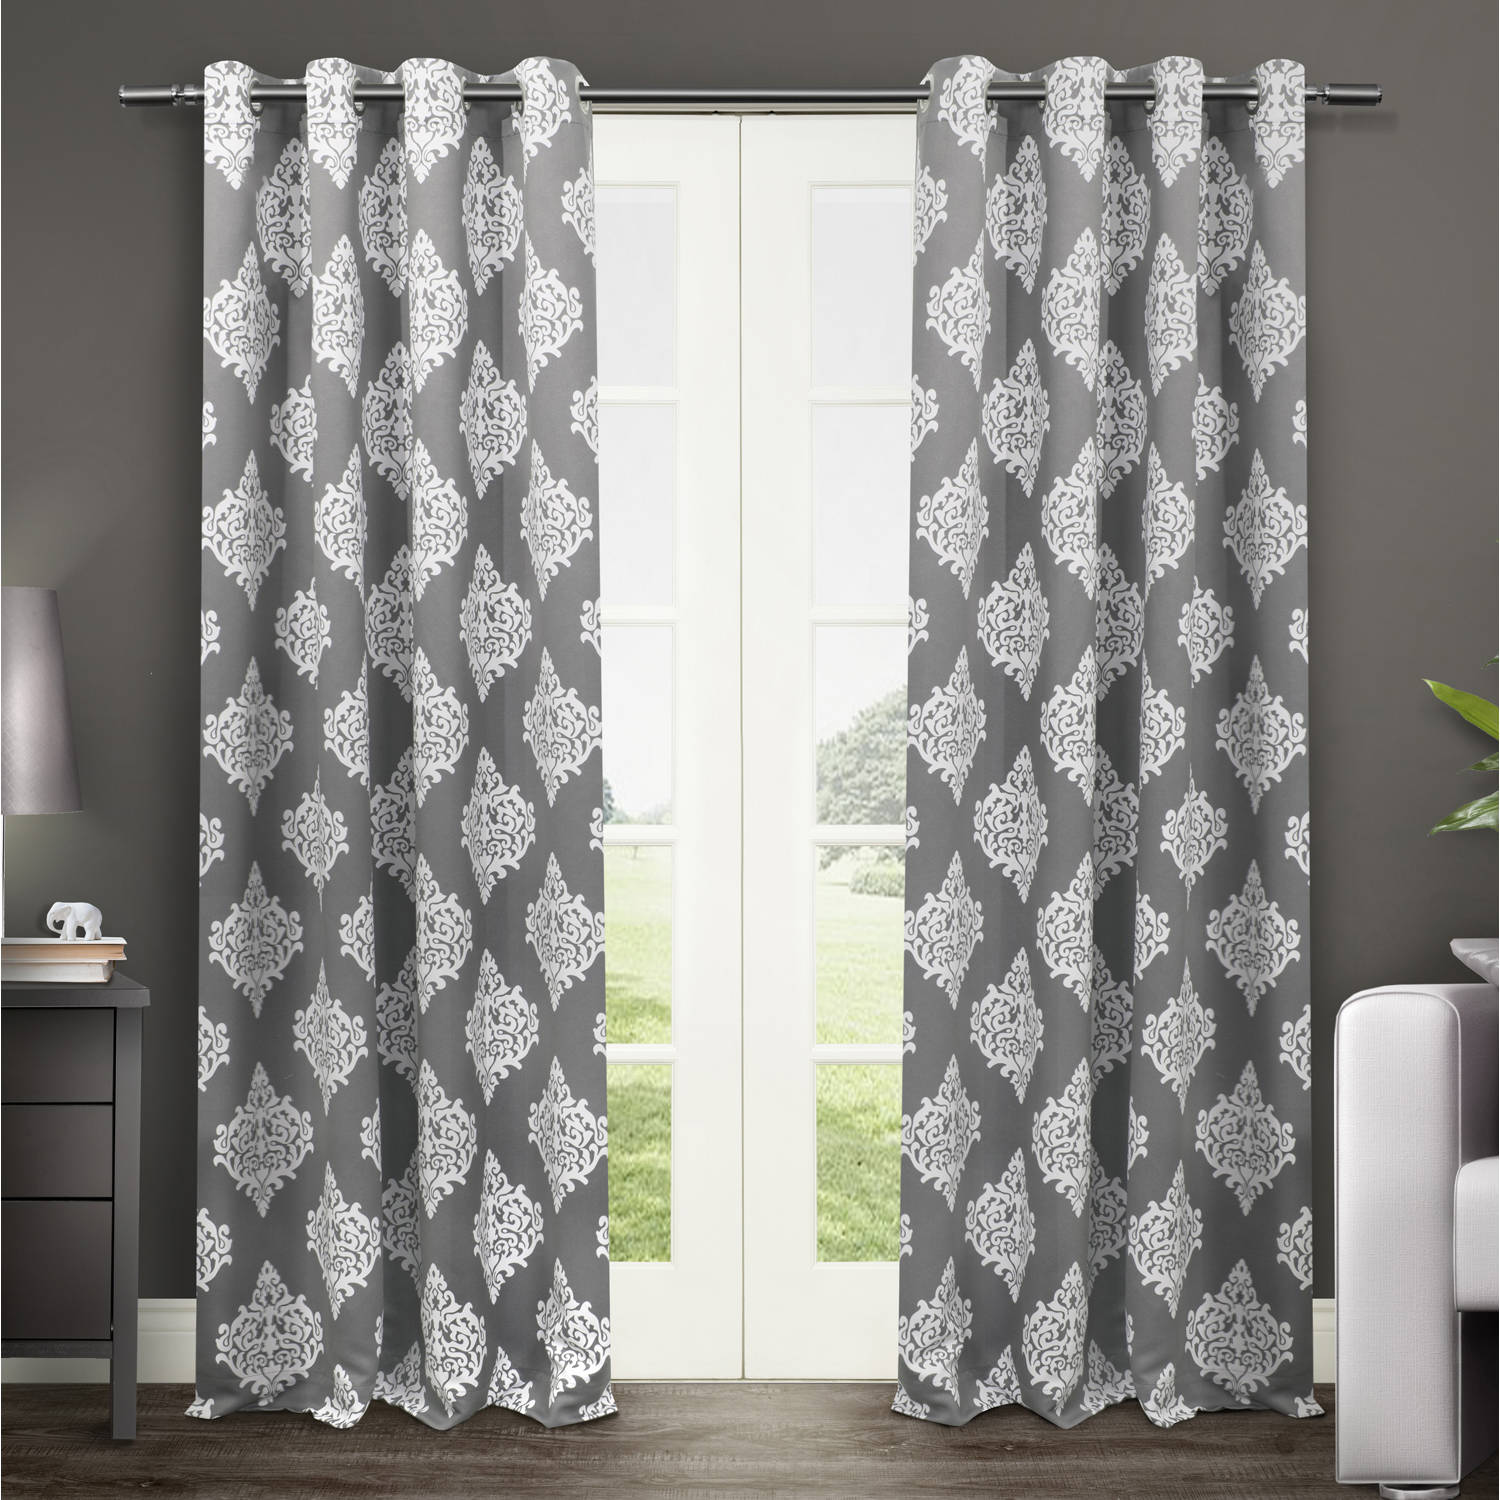 "Exclusive Home Medallion Blackout Thermal Grommet Top Window Curtain Panels, 52"" x 84"", Black Pearl, Set of 2"